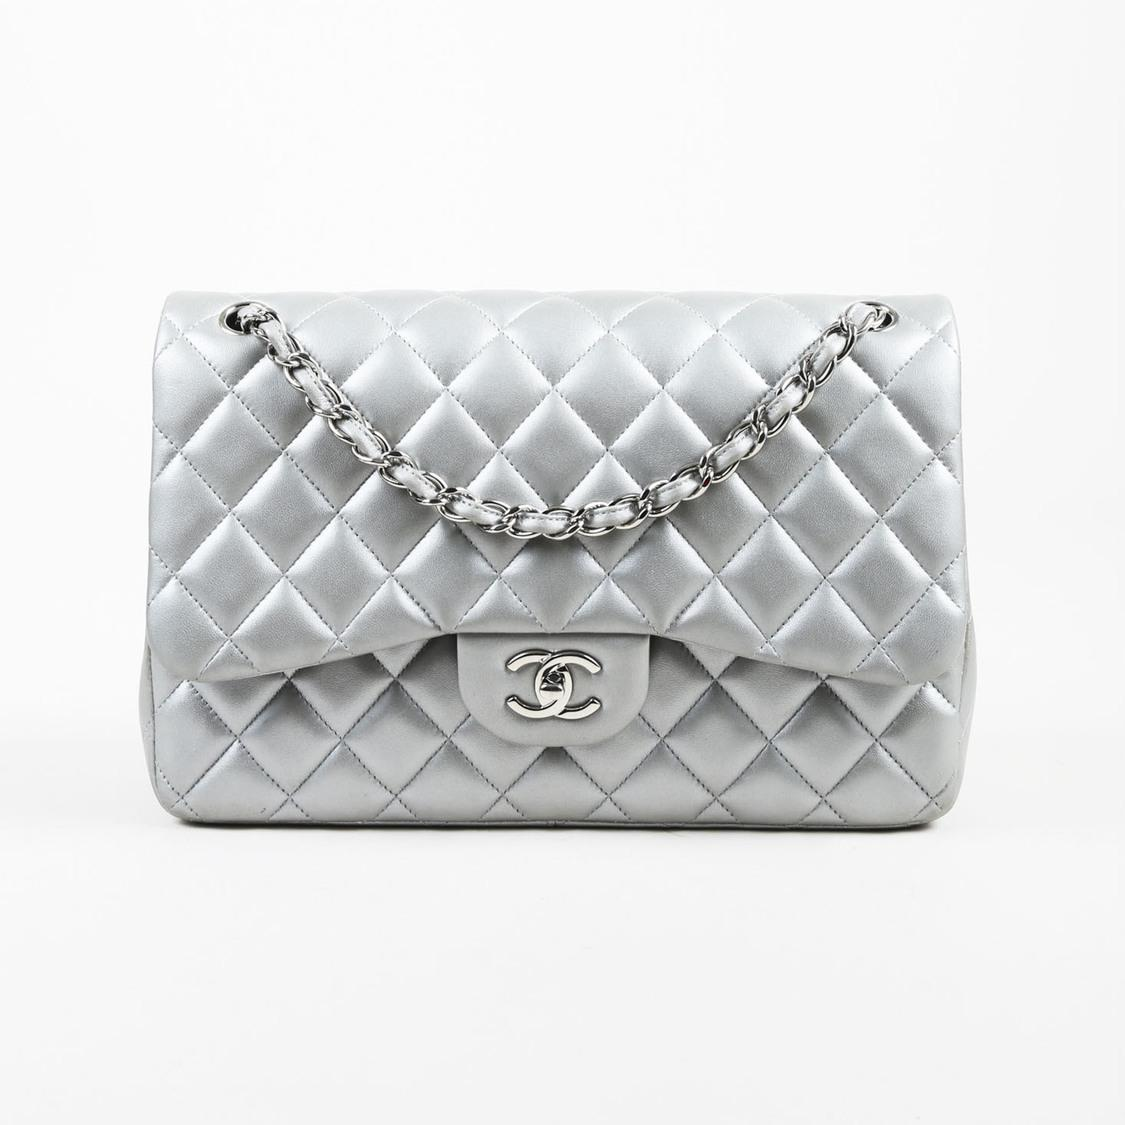 e9f088e8cfb9 Chanel Metallic Silver Lambskin Quilted Jumbo Classic Double Flap ...